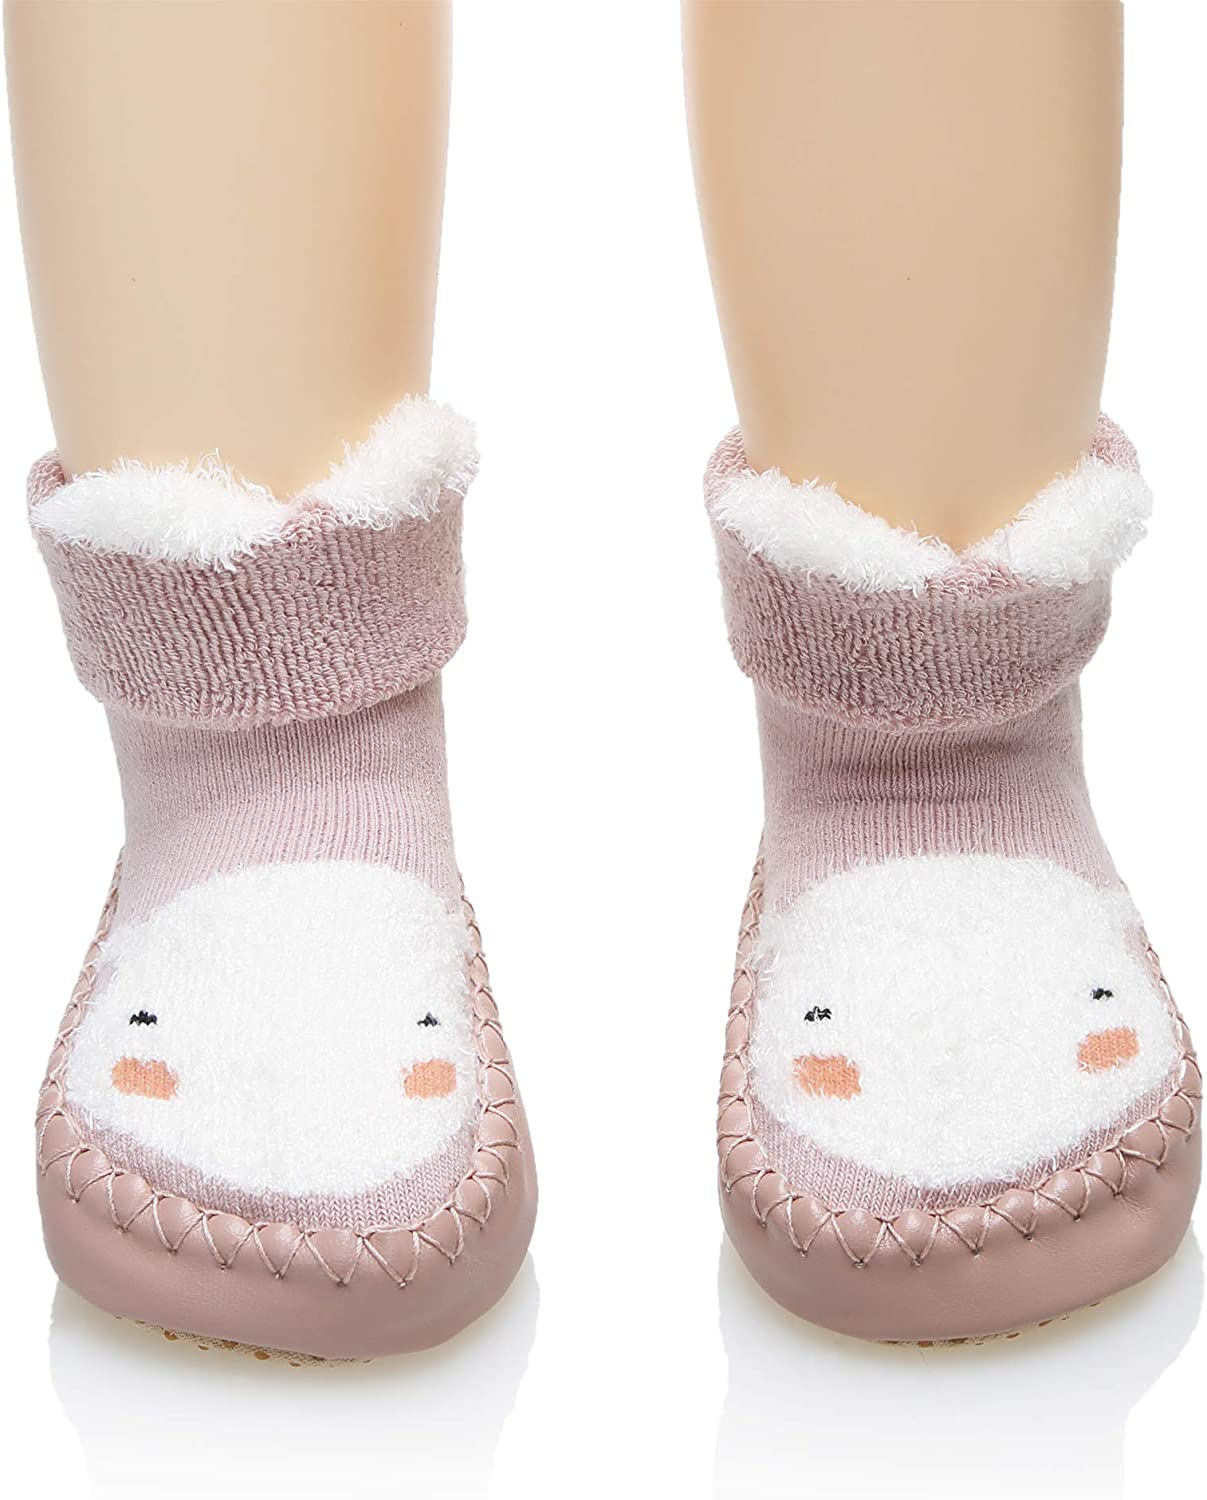 Baby Boy Girl Animal Moccasins Non-Skid Indoor Slipper Toddlers Winter Warm Shoes Socks